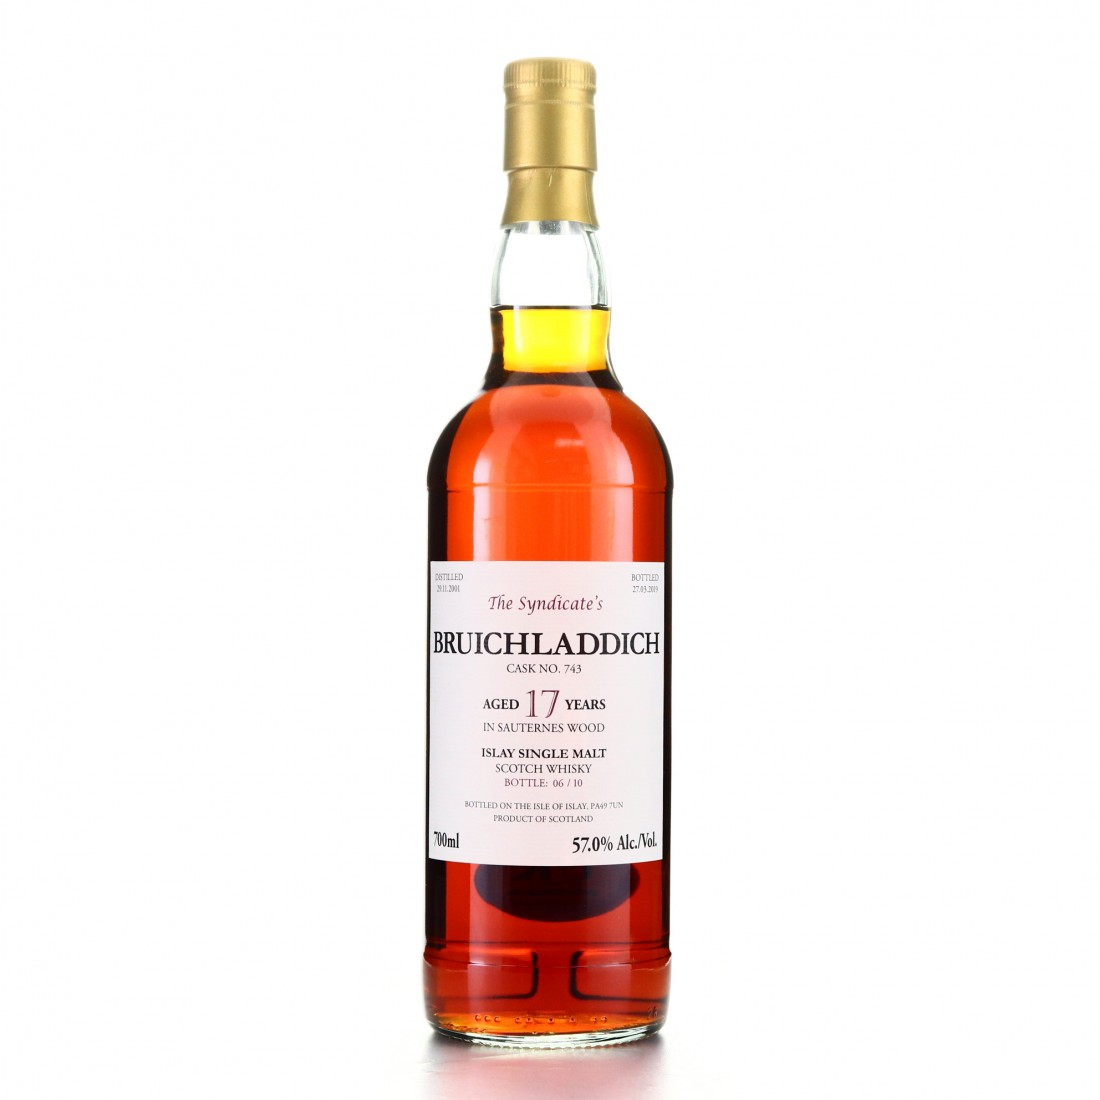 Bruichladdich 2001 The Syndicate 17 Year Old / One of only 10